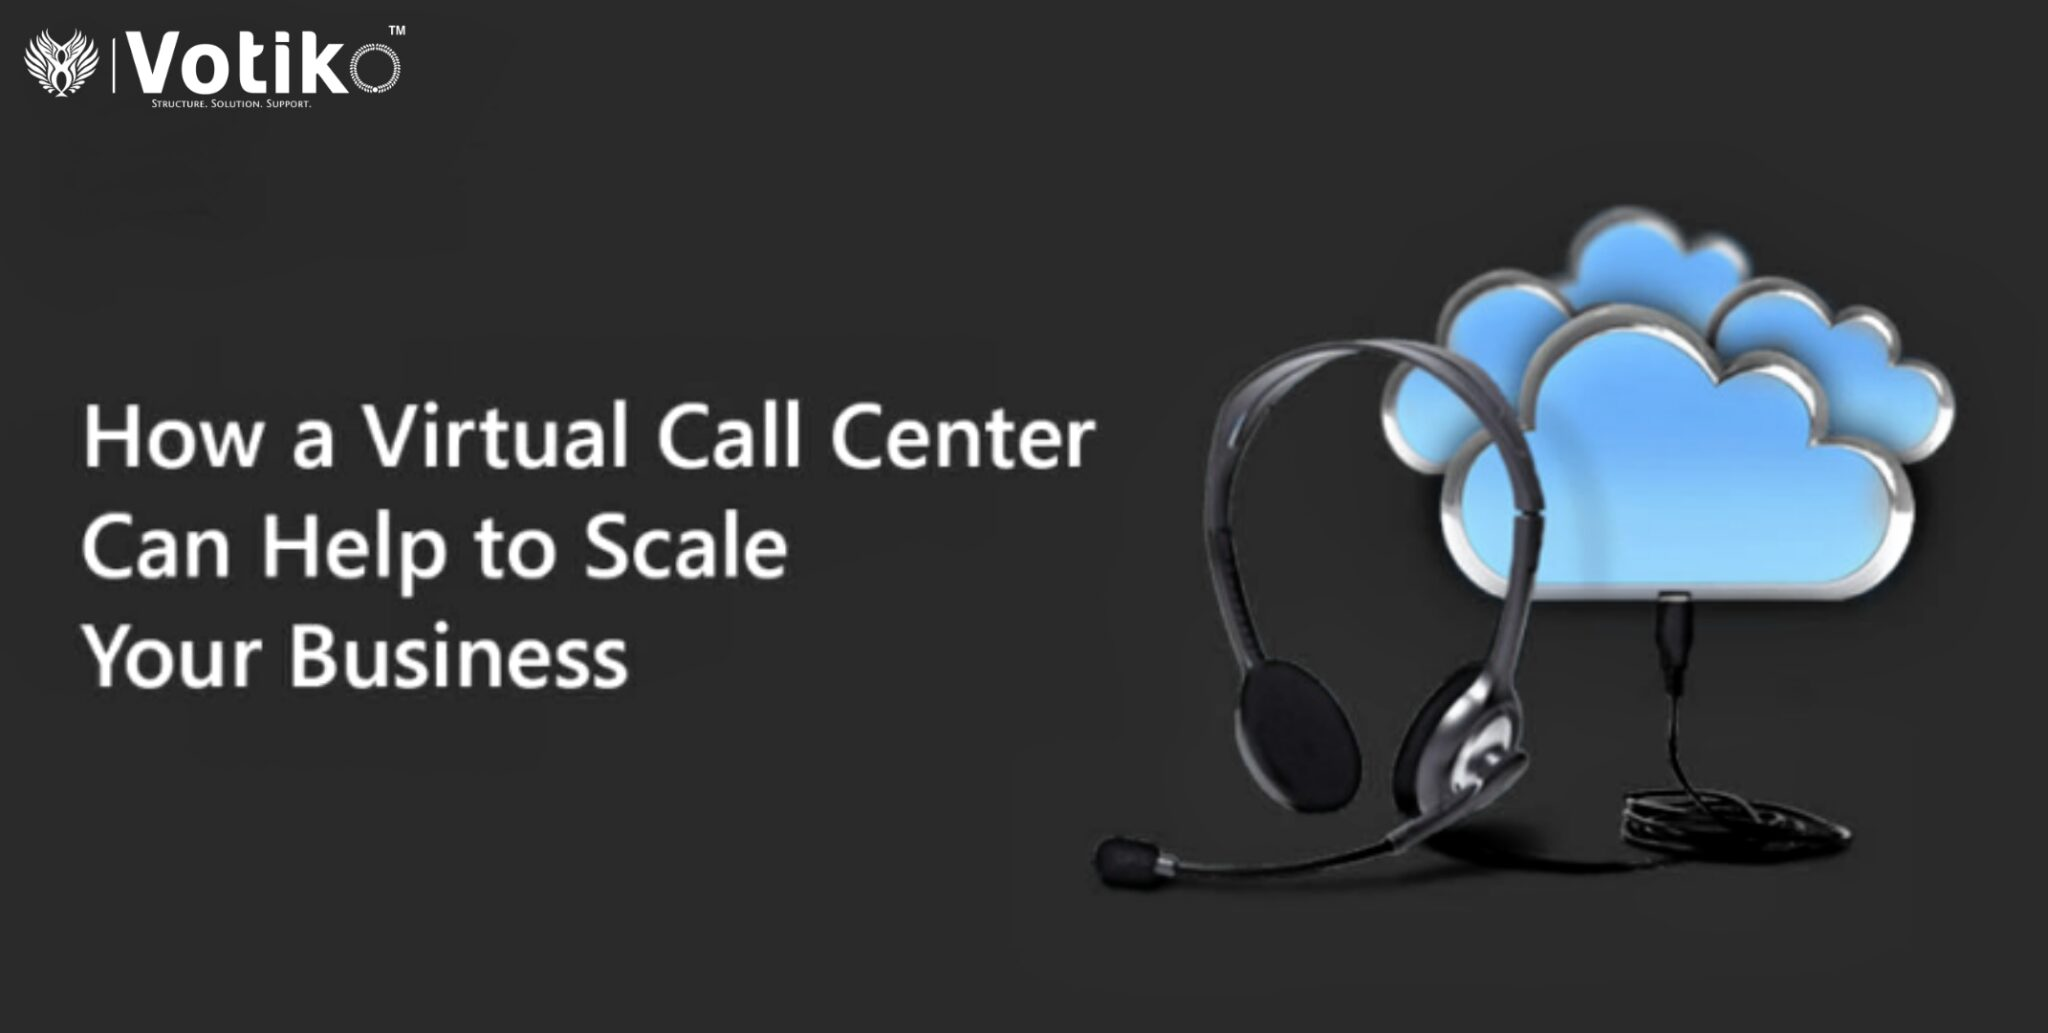 How Can a Virtual Call Center Assist You in Scaling Your Business?